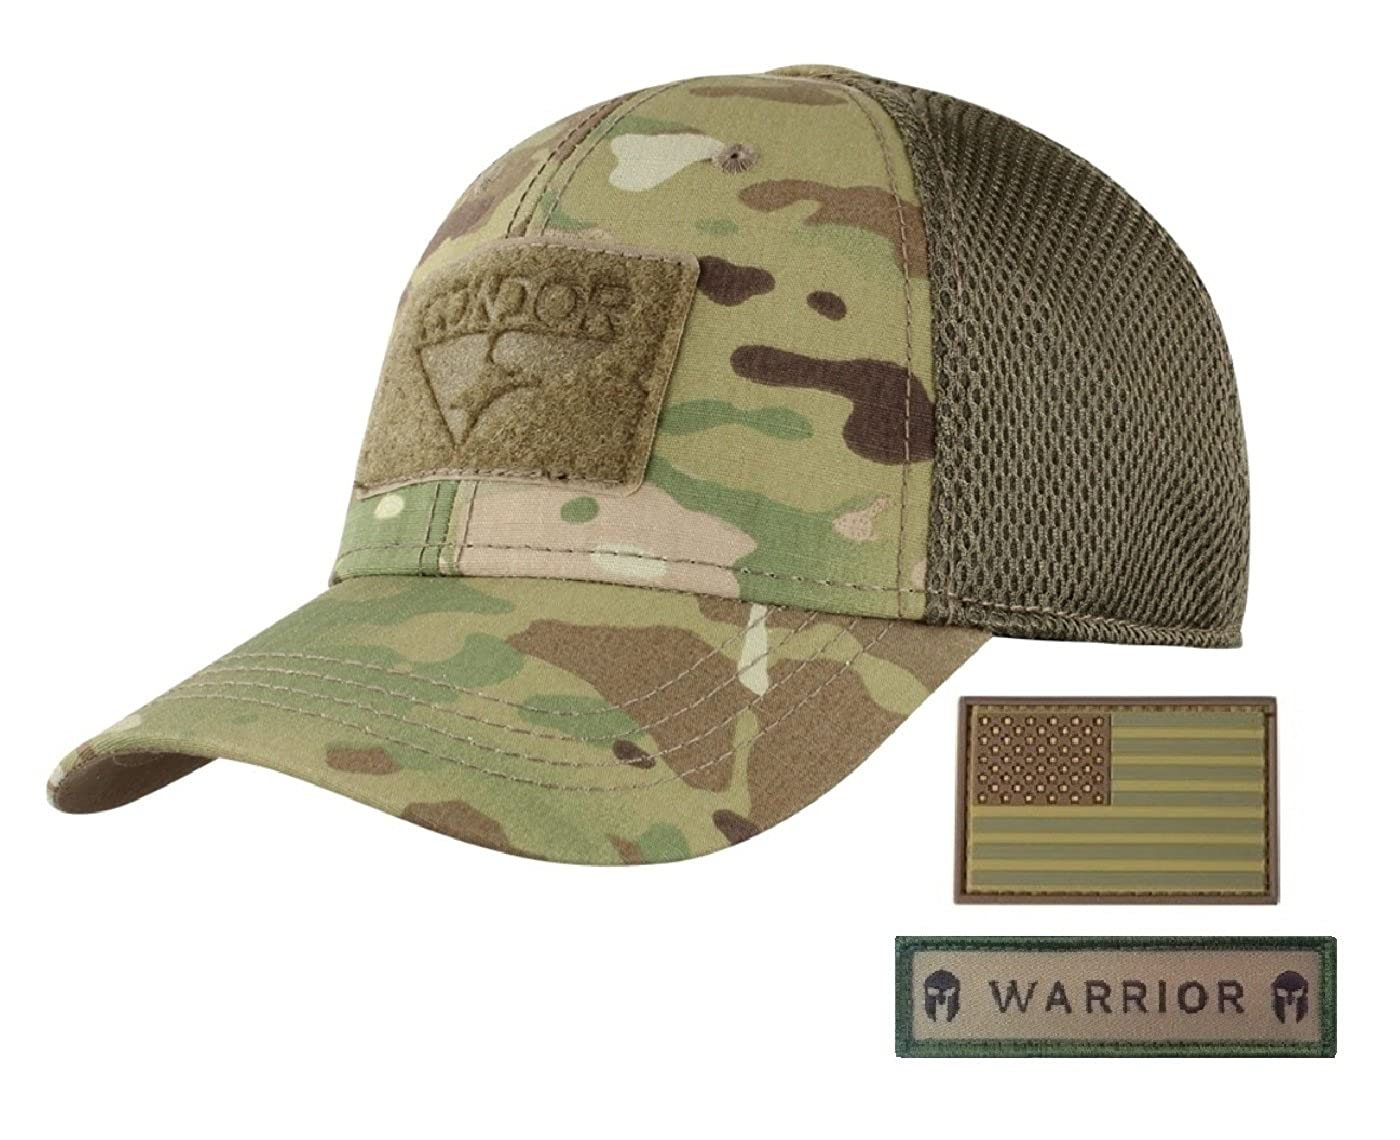 Active Duty Gear Condor Flex Mesh Cap (Multicam) + PVC Flag & Warrior  Patch, Highly Breathable Fitted Tactical Operator Hat